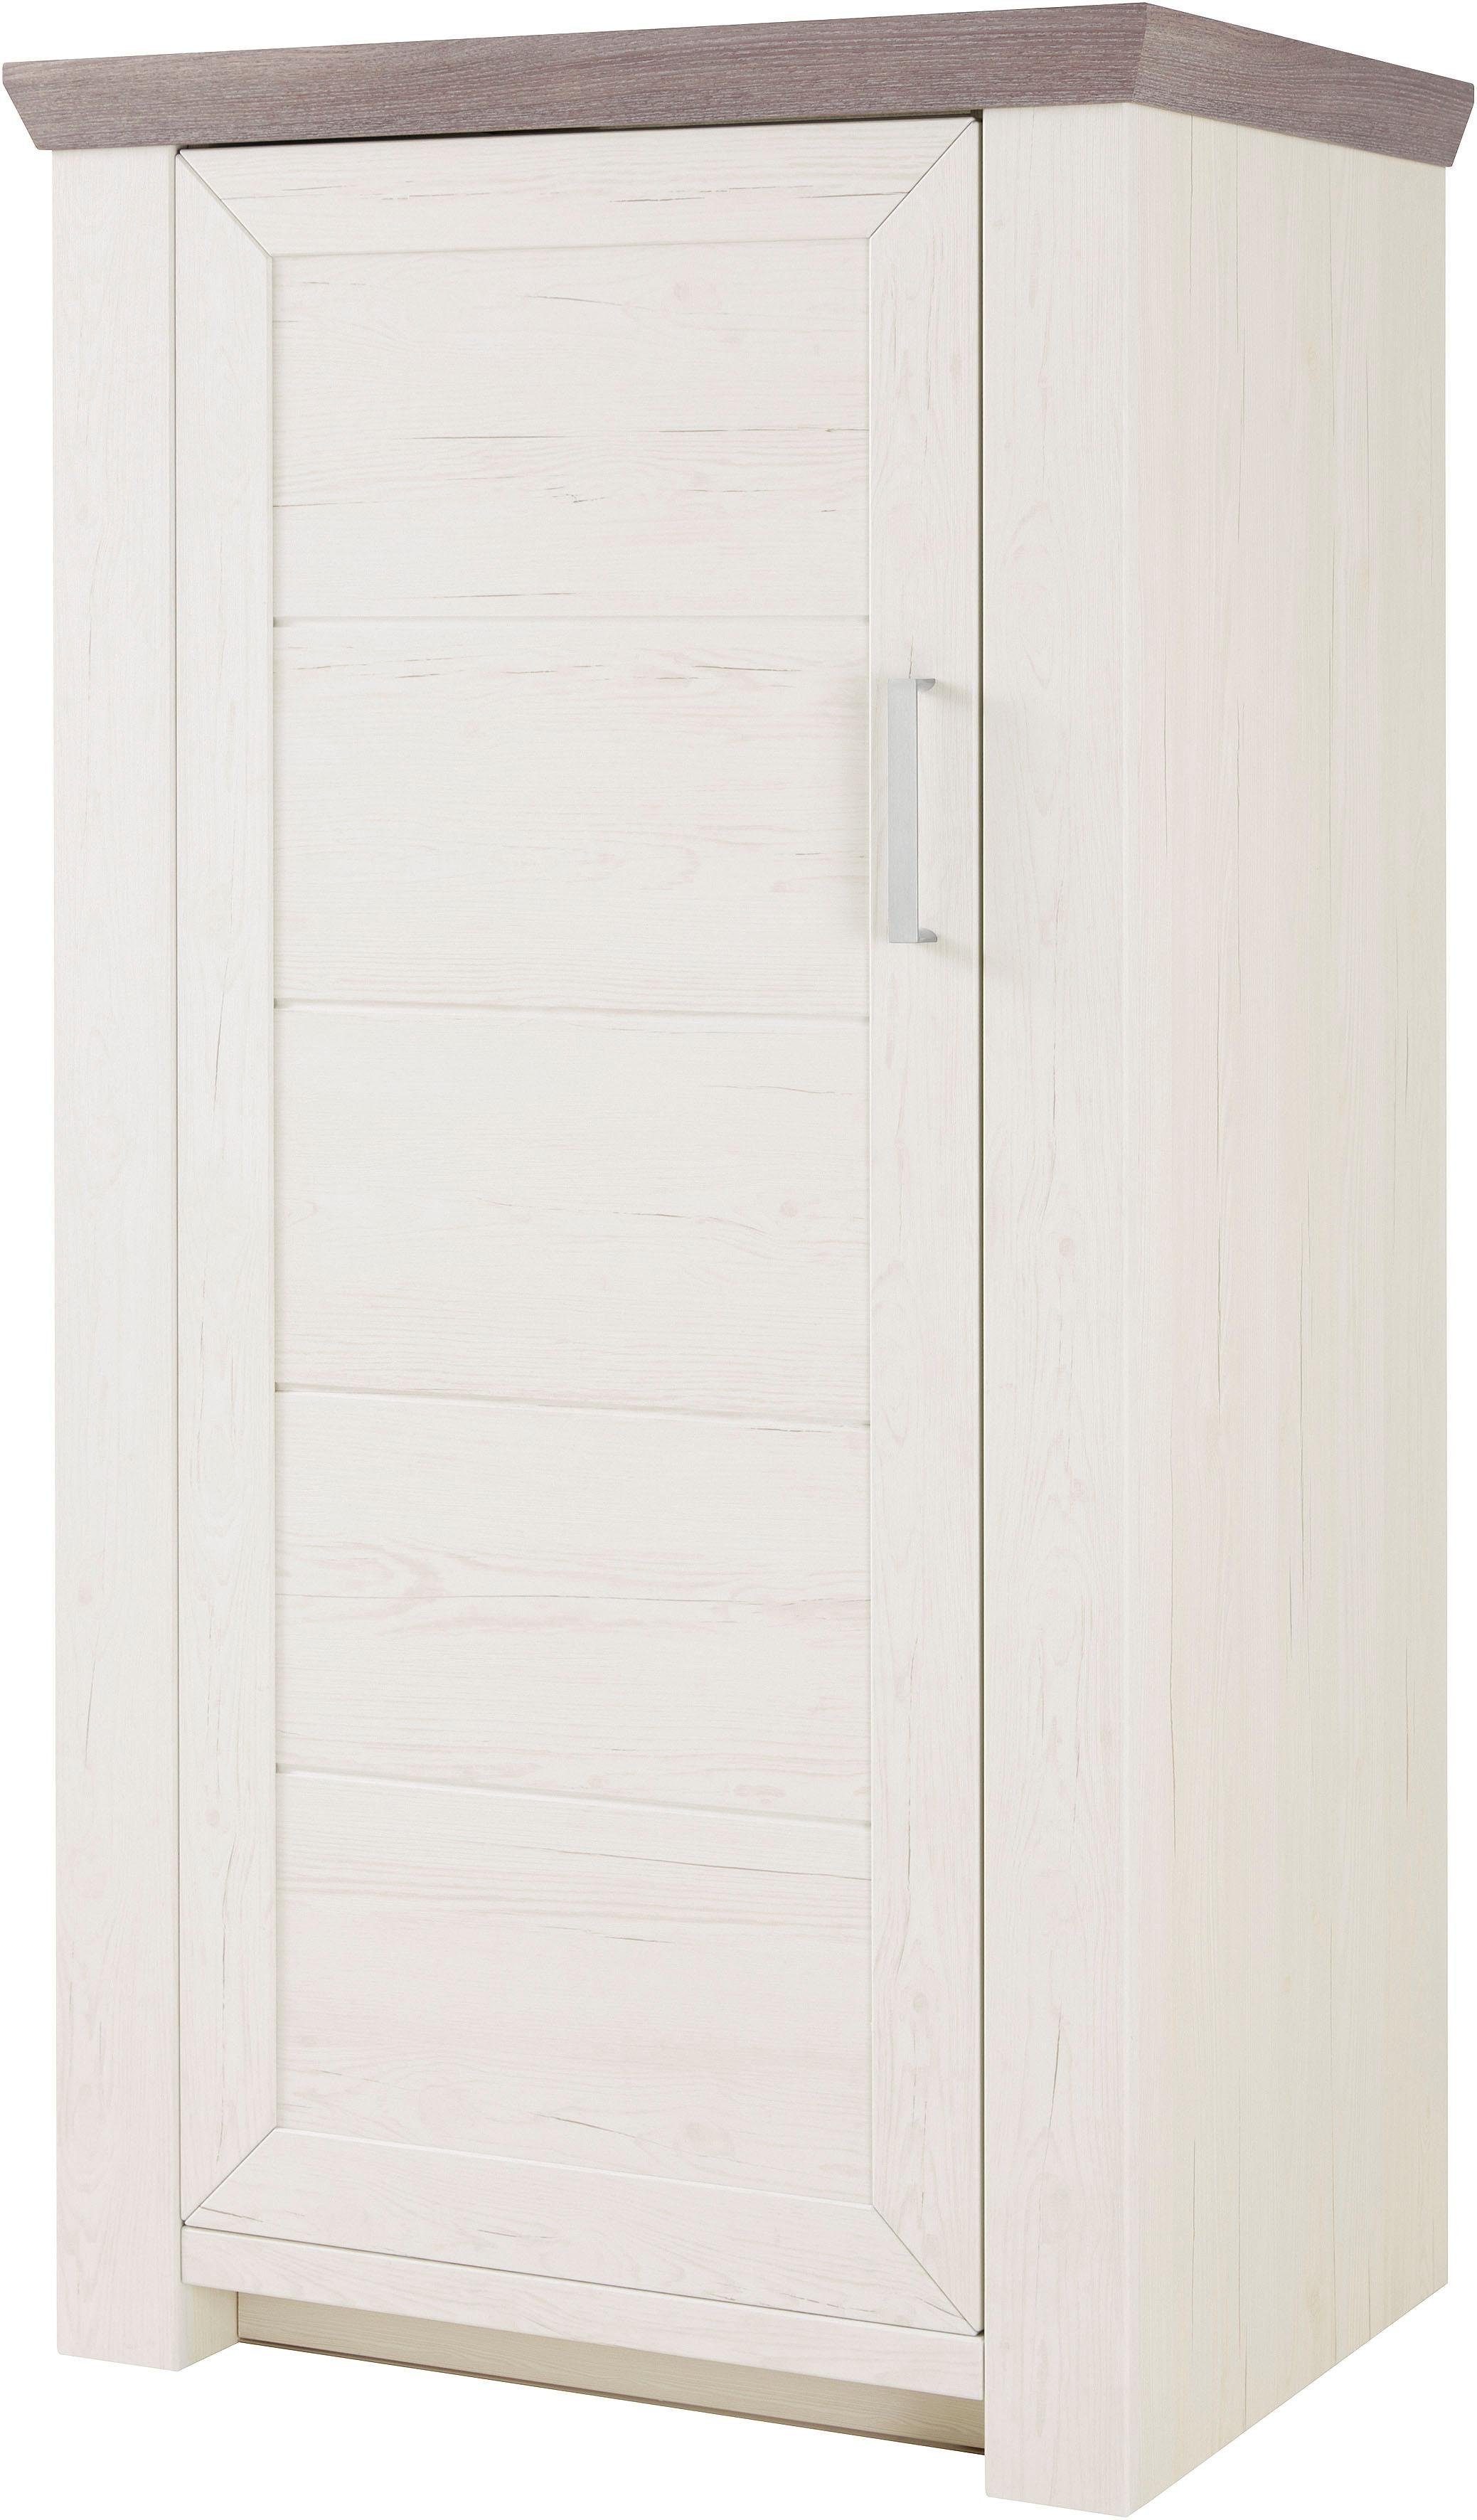 set one by Musterring Vorratschrank »york« Typ 44, Breite 85 cm